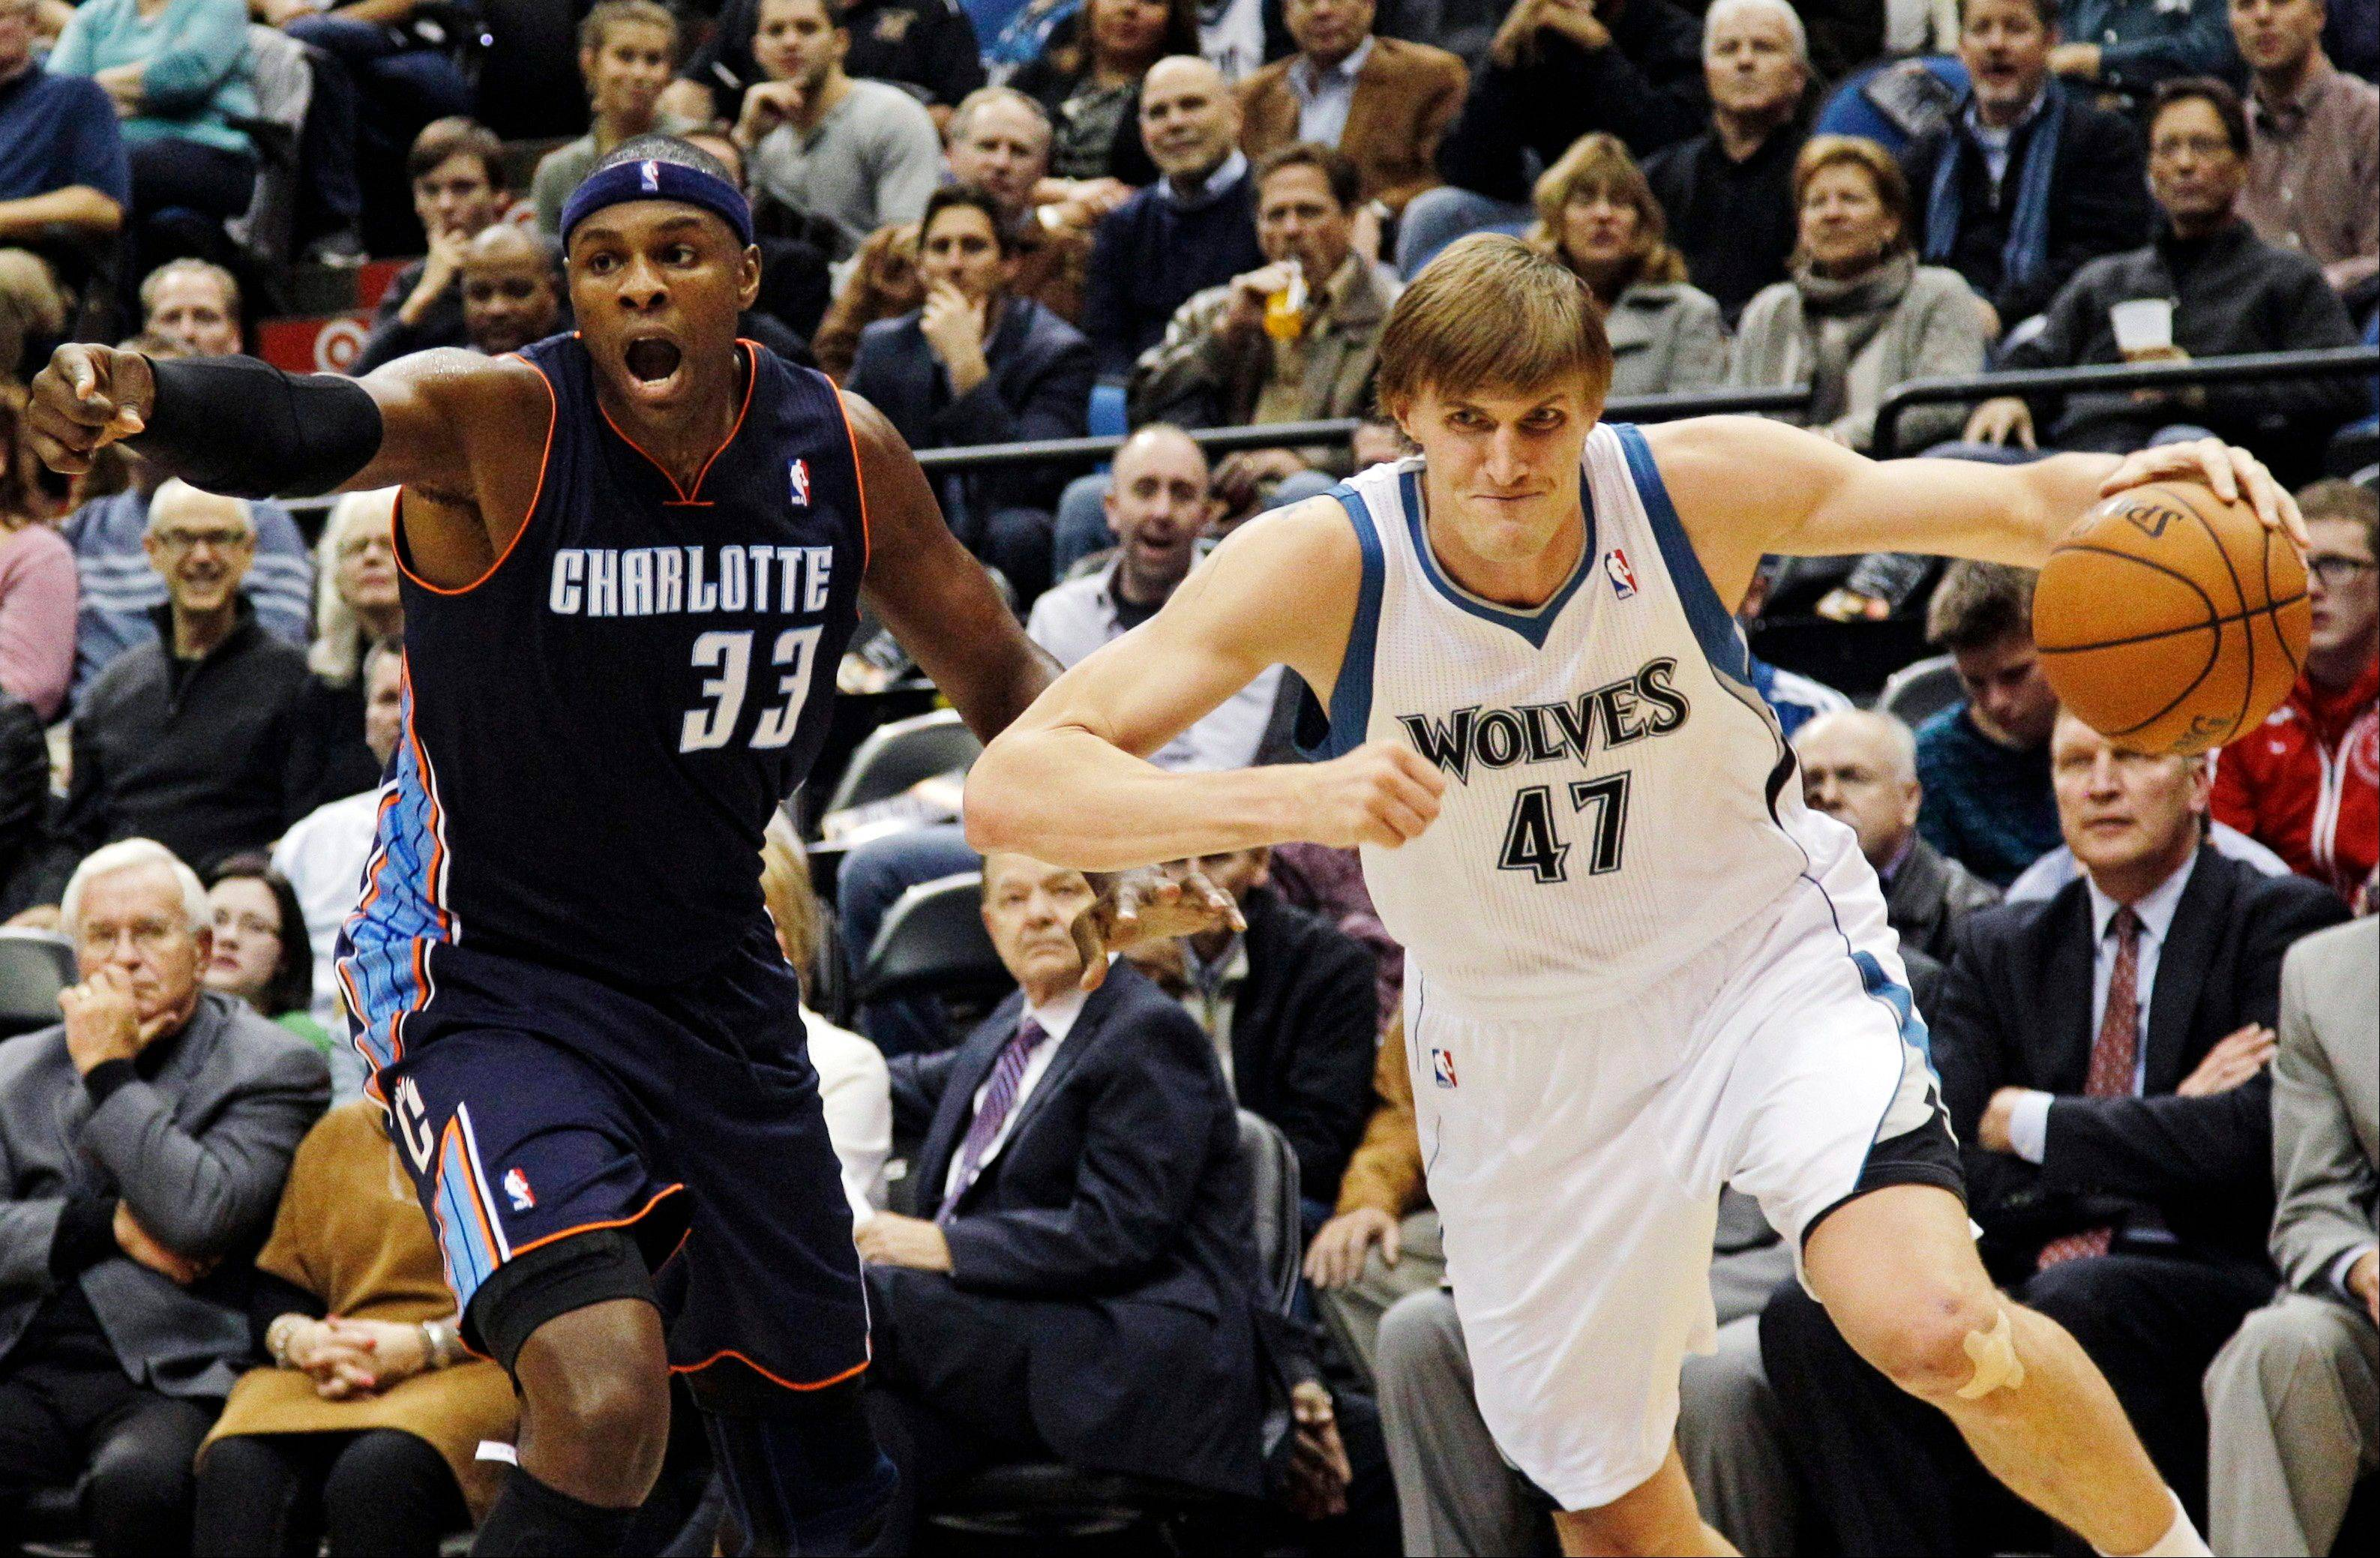 Walker's jumper lifts Bobcats over Wolves 89-87